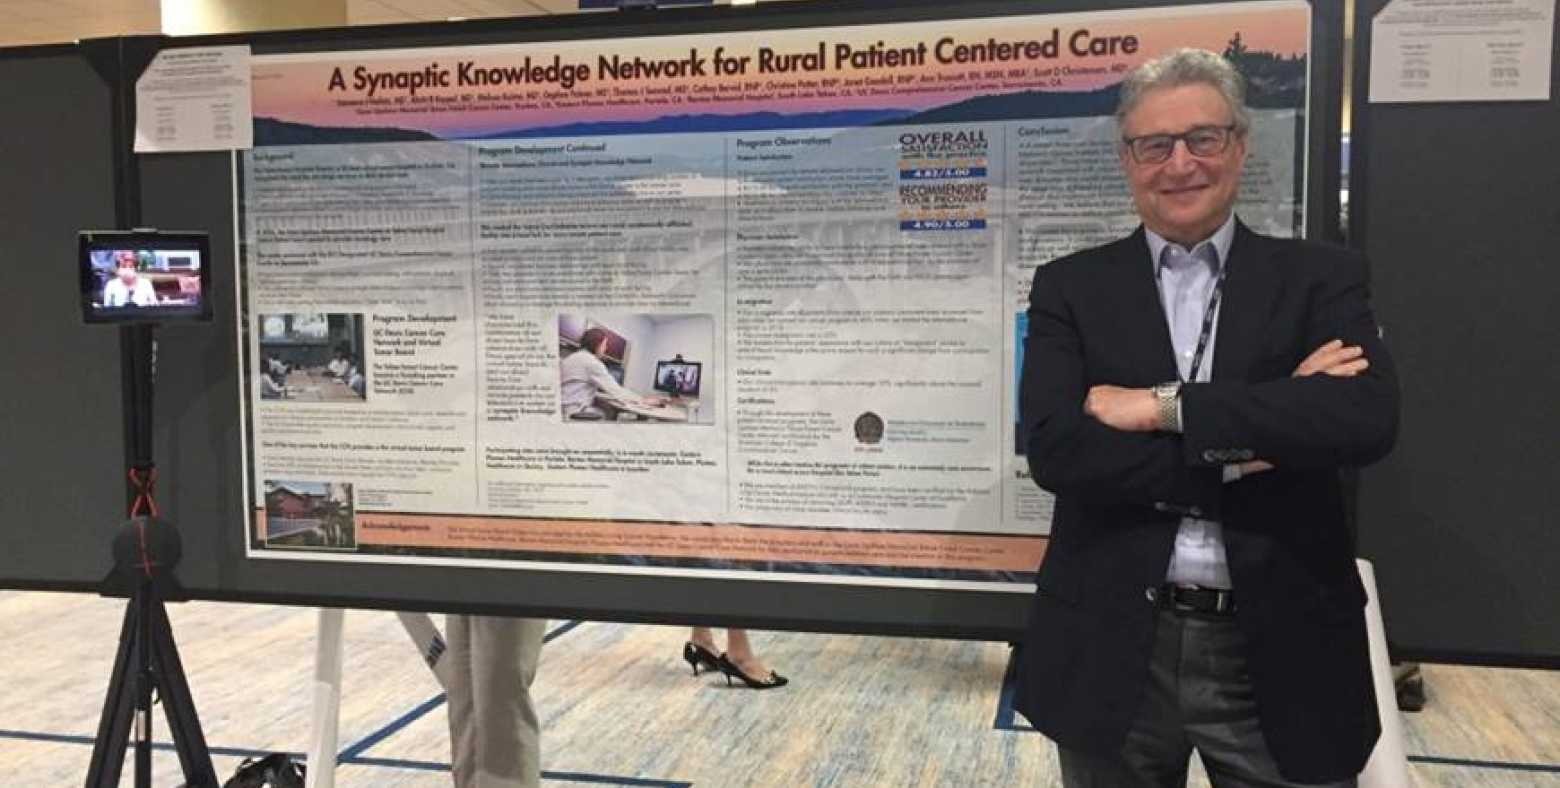 Dr. Heifetz at the 2017 American Society of Clinical Oncology Quality Symposium